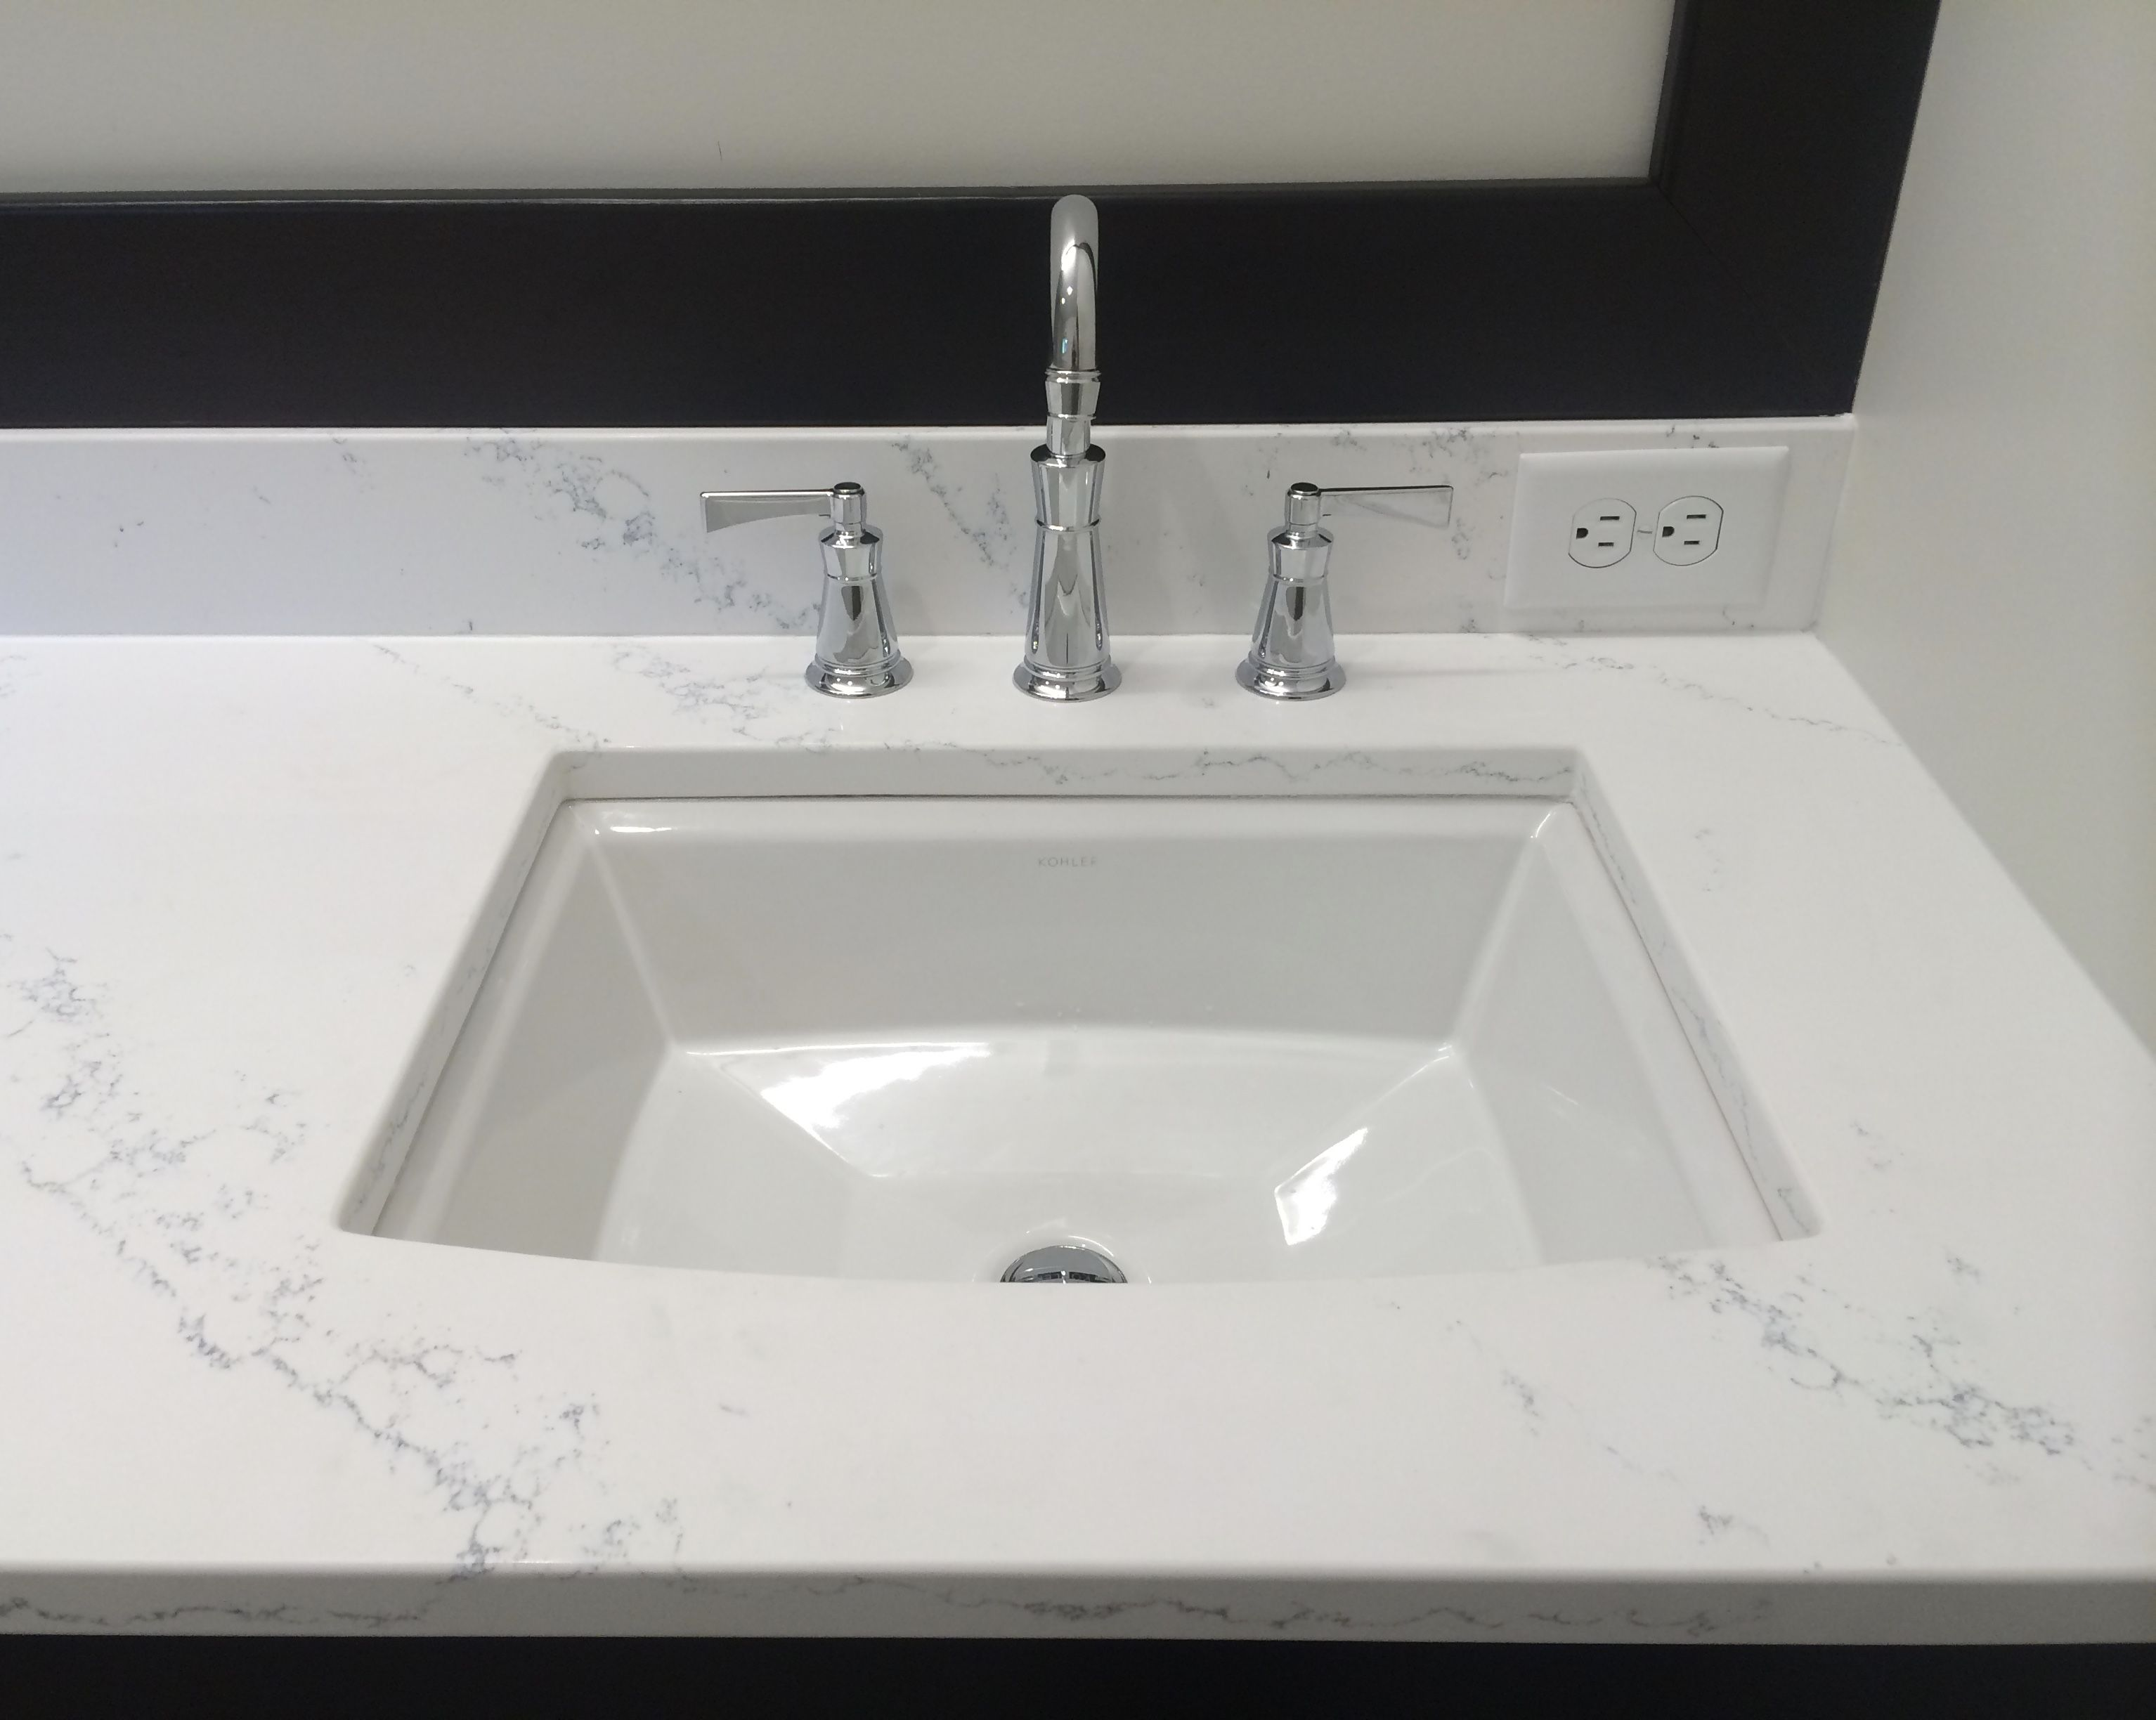 Quartz Countertops Kohler Archer Undermount Sink And